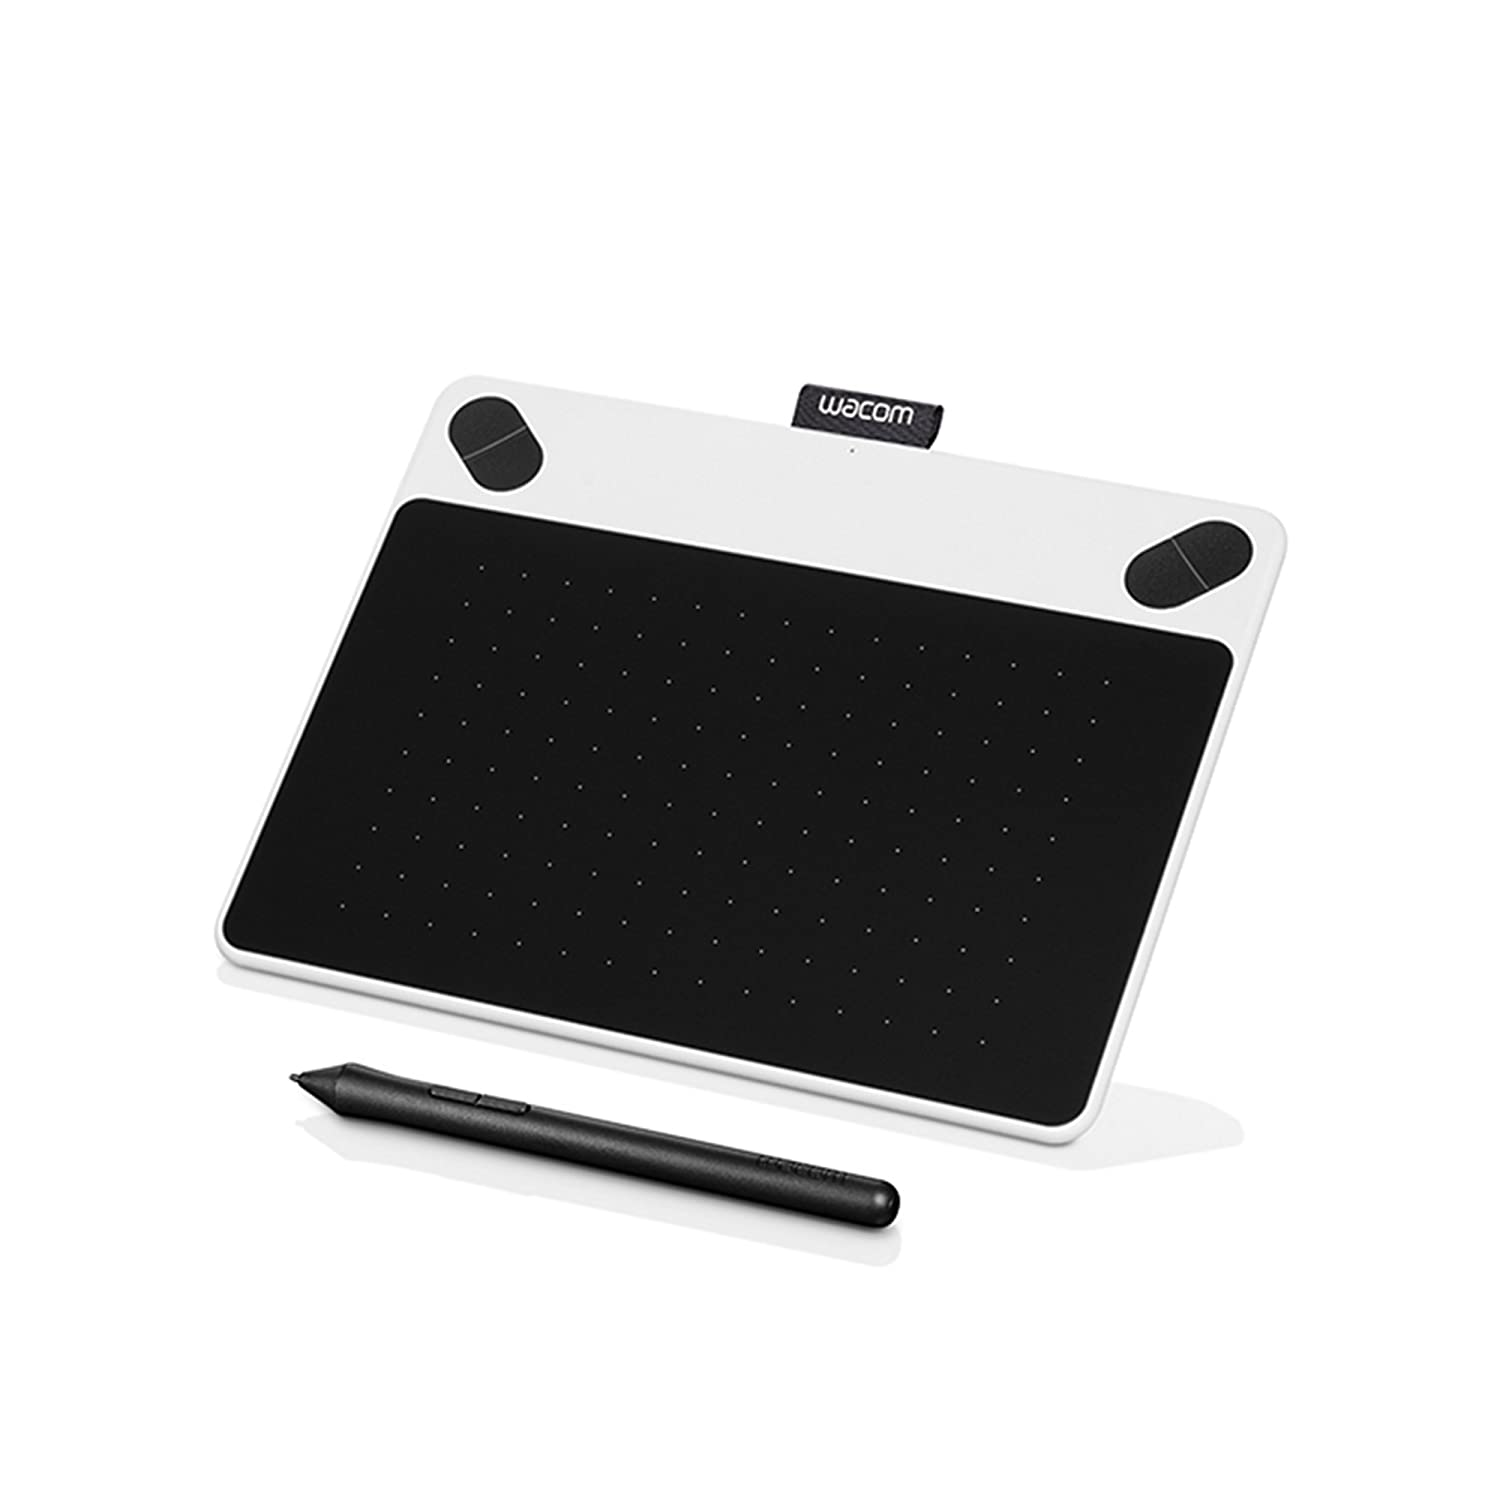 Wacom Intuos Draw CTL490DW Digital Drawing and Graphics Tablet